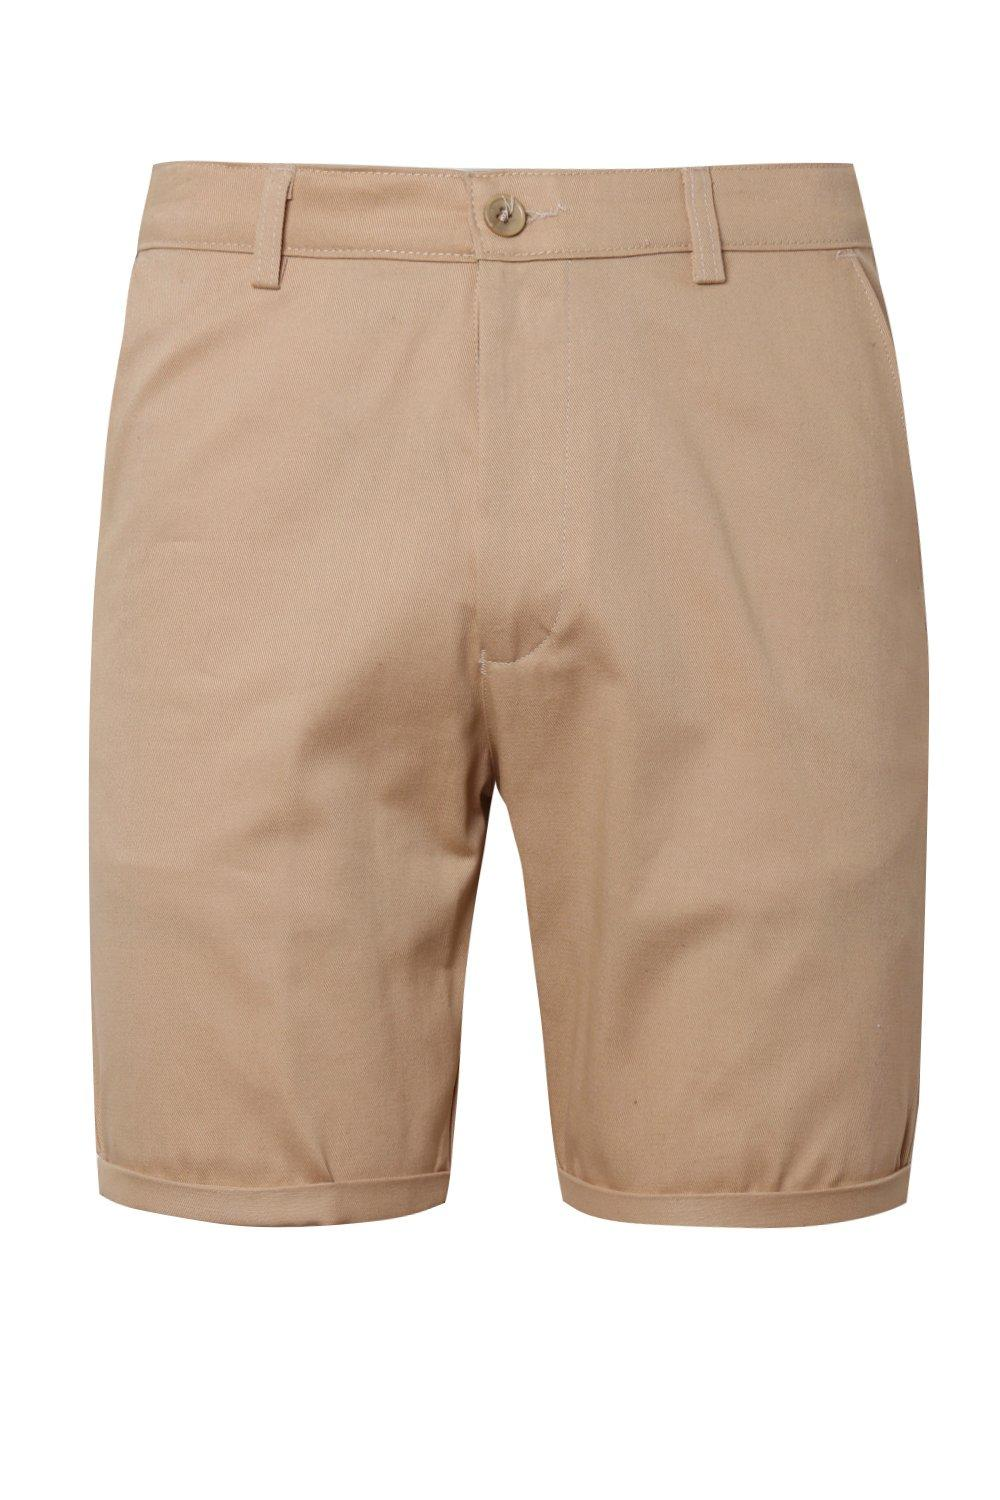 boohooMAN Mid Length Slim Fit Chino Shorts In Stone